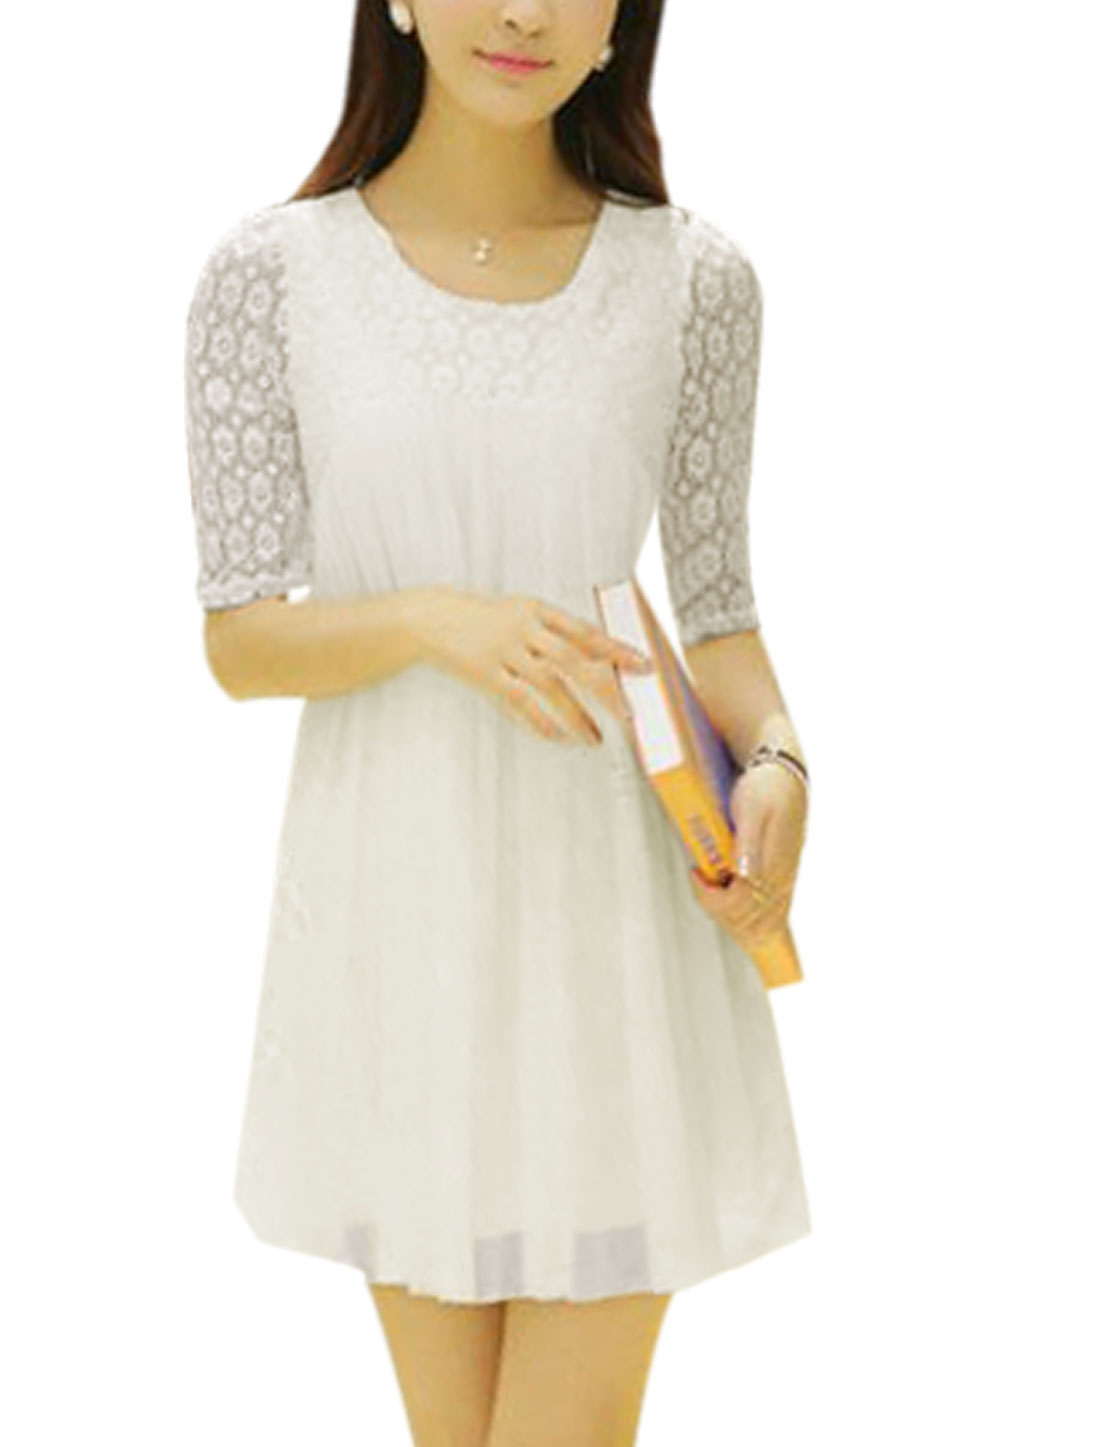 Ladies Sweet Elbow Sleeve Hollow Out Design Mesh Dress White M